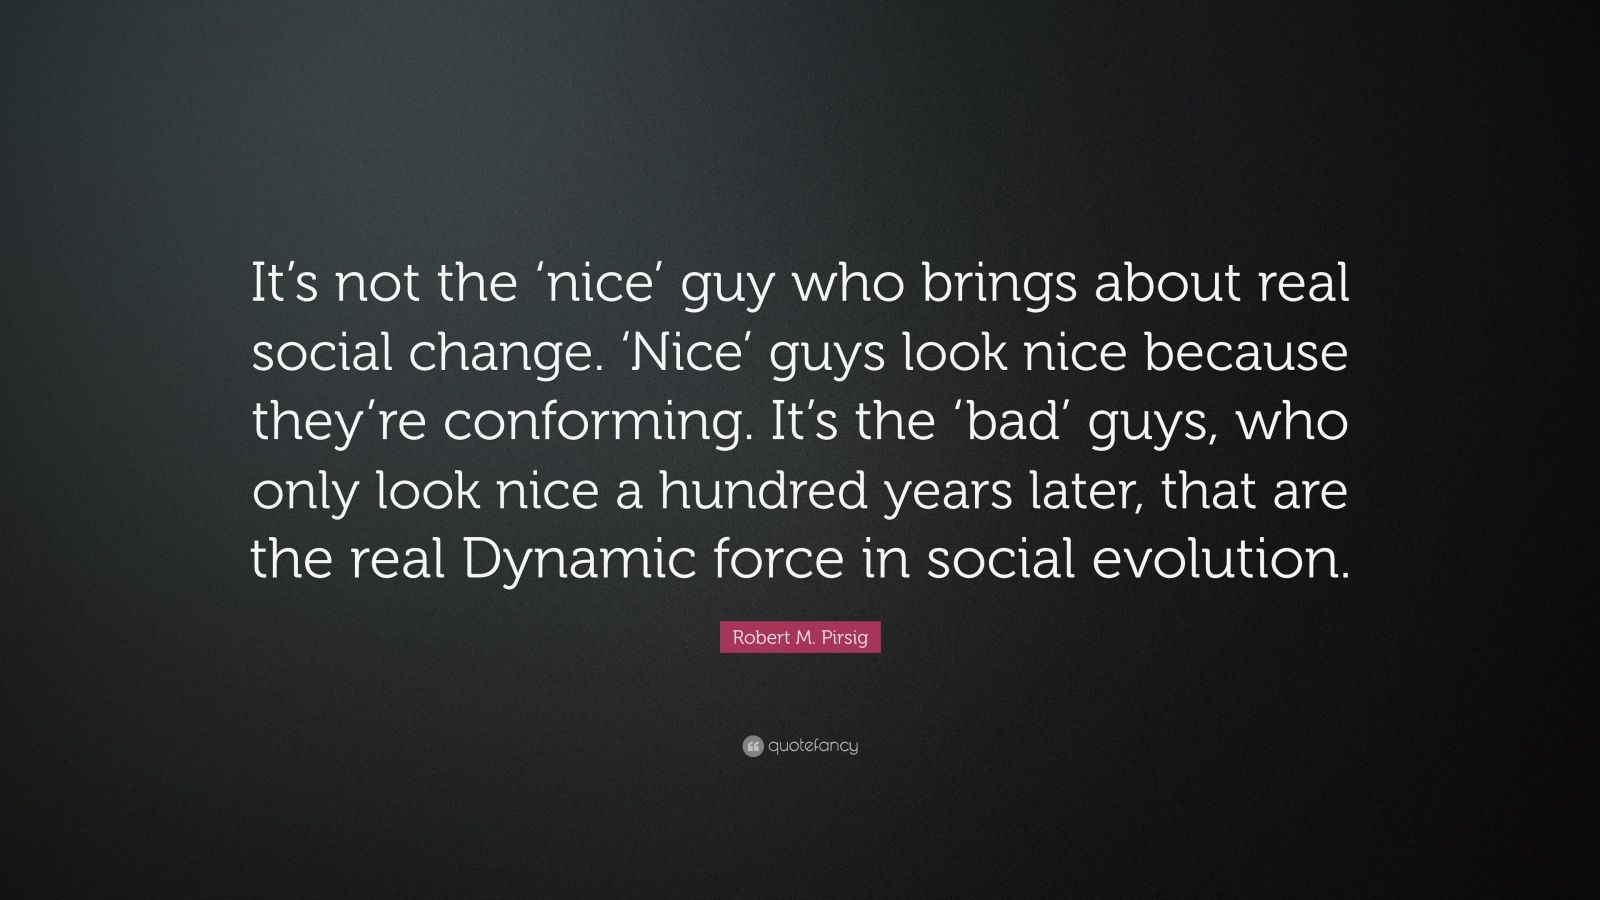 """Robert M. Pirsig Quote: """"It's not the 'nice' guy who brings about real social change. 'Nice' guys look nice because they're conforming. It's the 'bad' guys, who only look nice a hundred years later, that are the real Dynamic force in social evolution."""""""